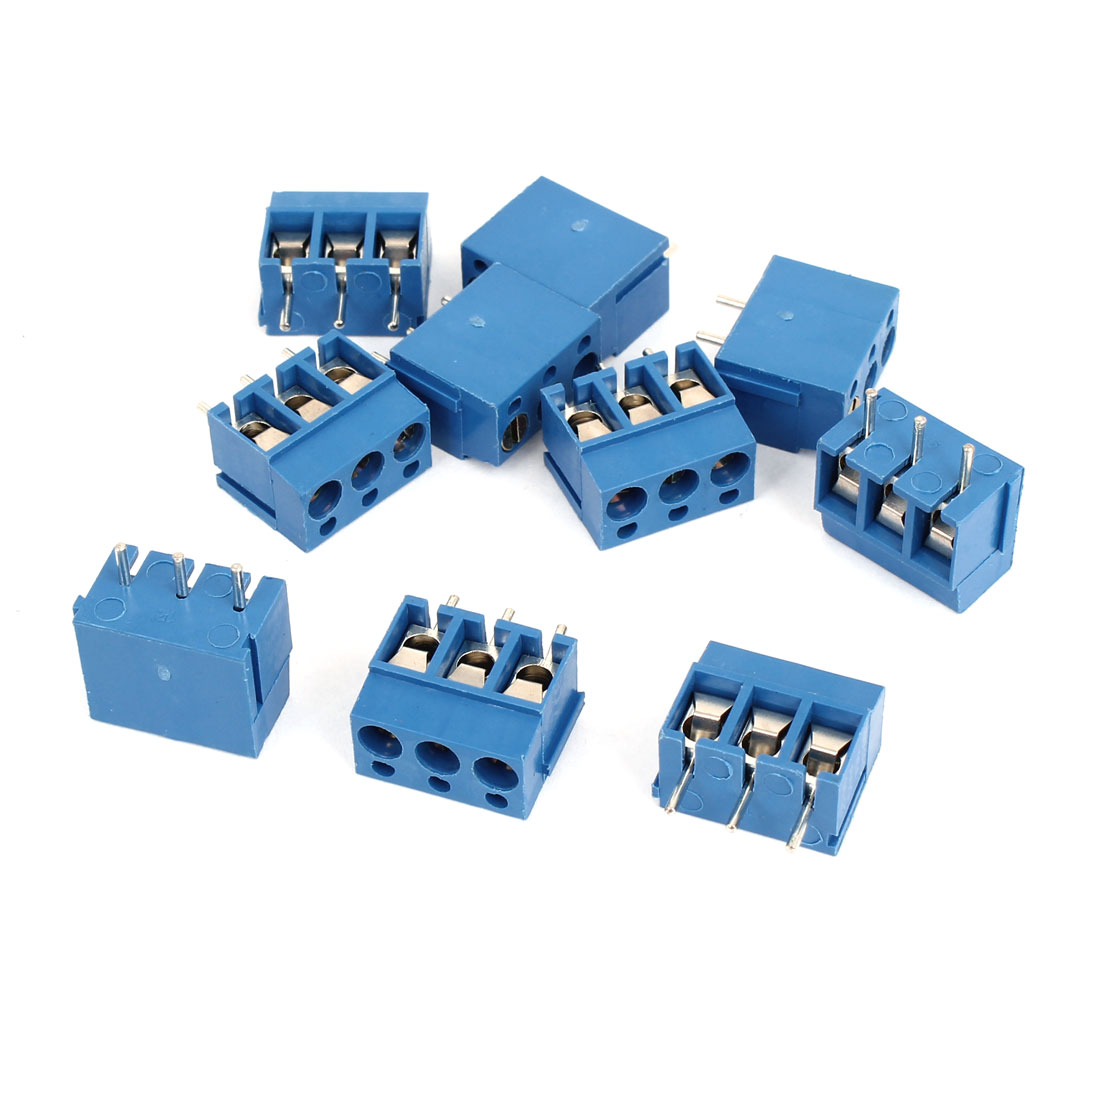 10Pcs AC 300V 16A 3P Poles PCB Screw Terminal Block Connector 5mm Pitch Blue